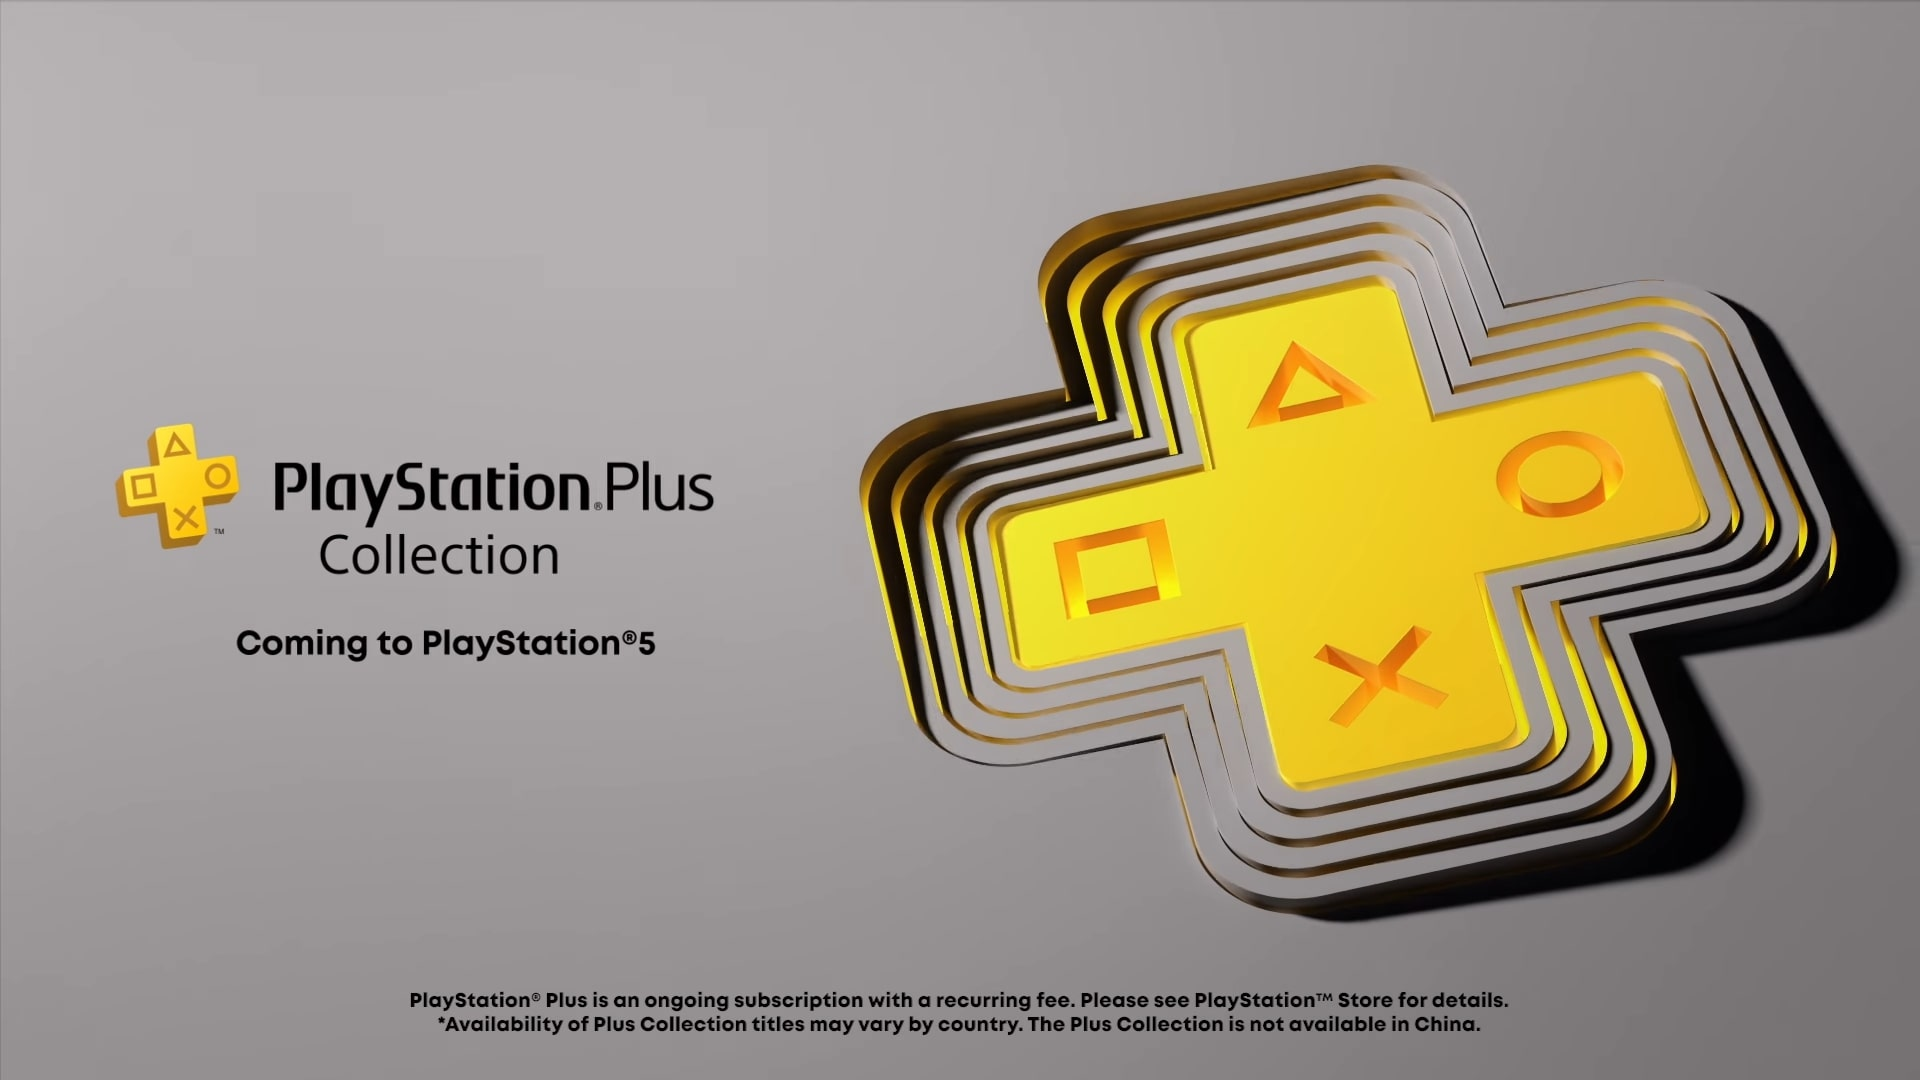 ps plus collection on ps4